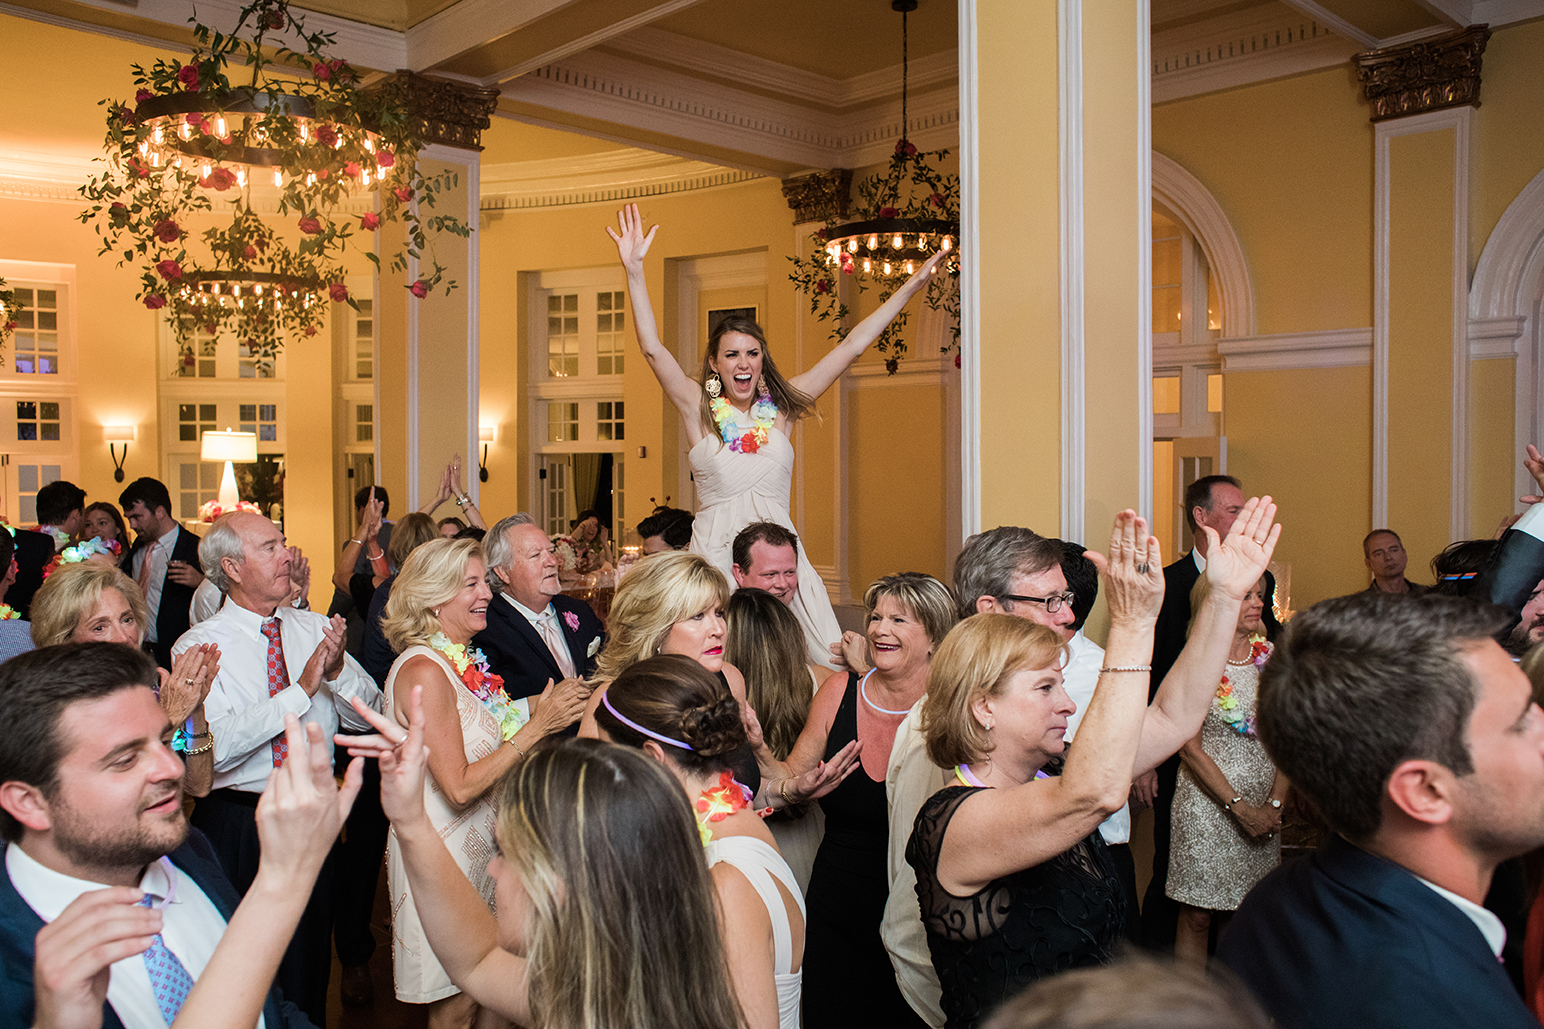 hotel wedding, reception, wedding guests, dance floor